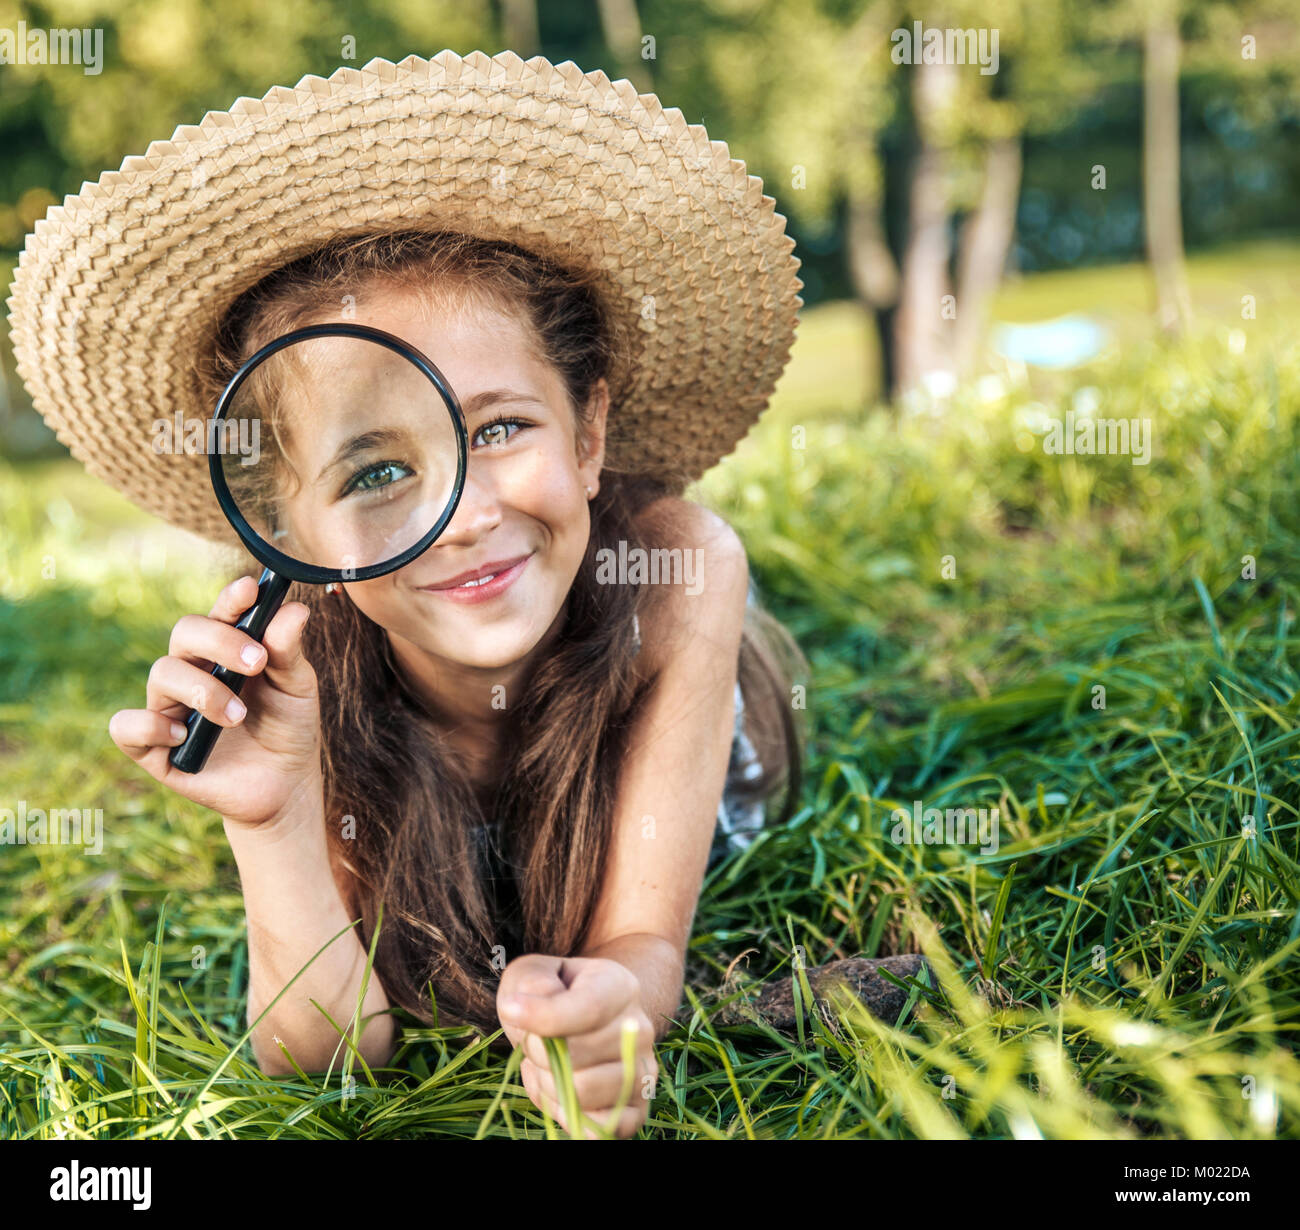 Pretty girl holding a magnifying glass - Stock Image